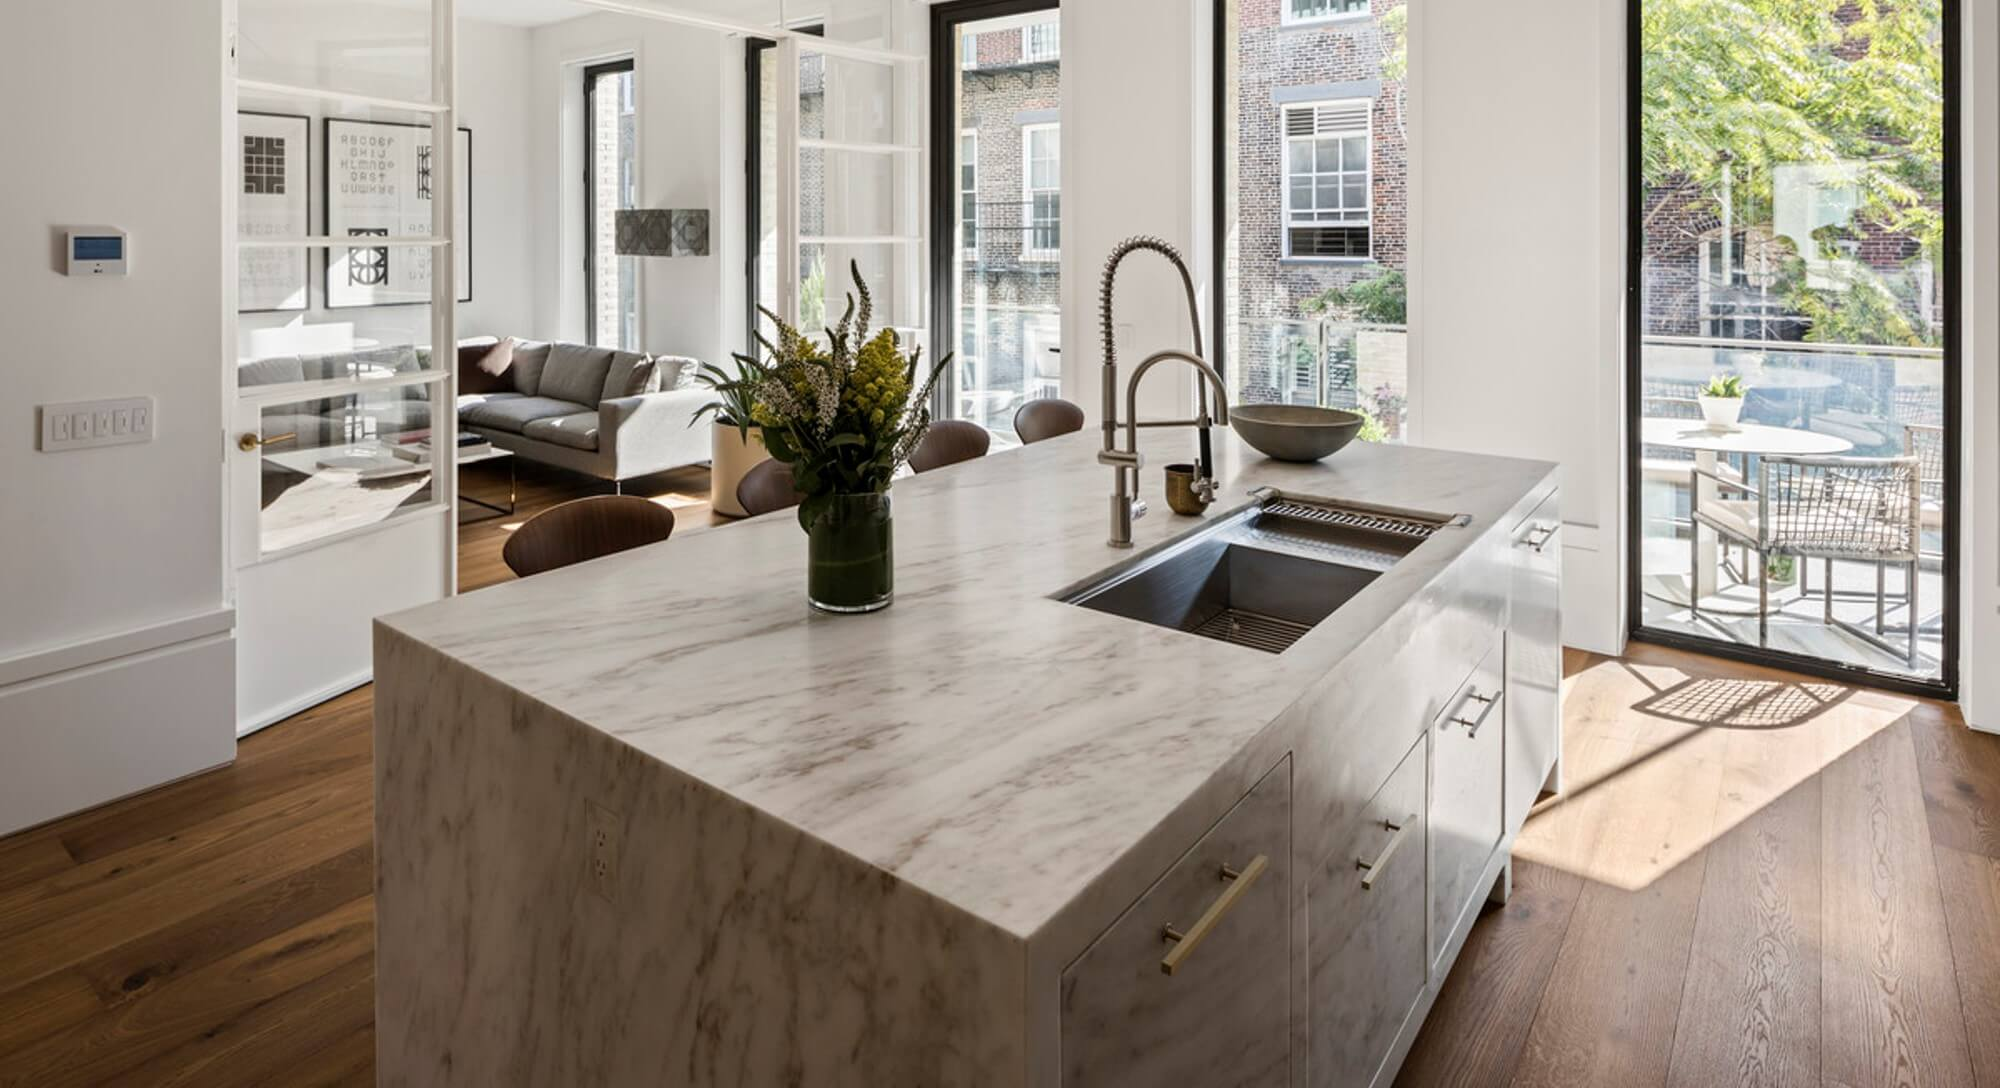 Marble countertops stain easy